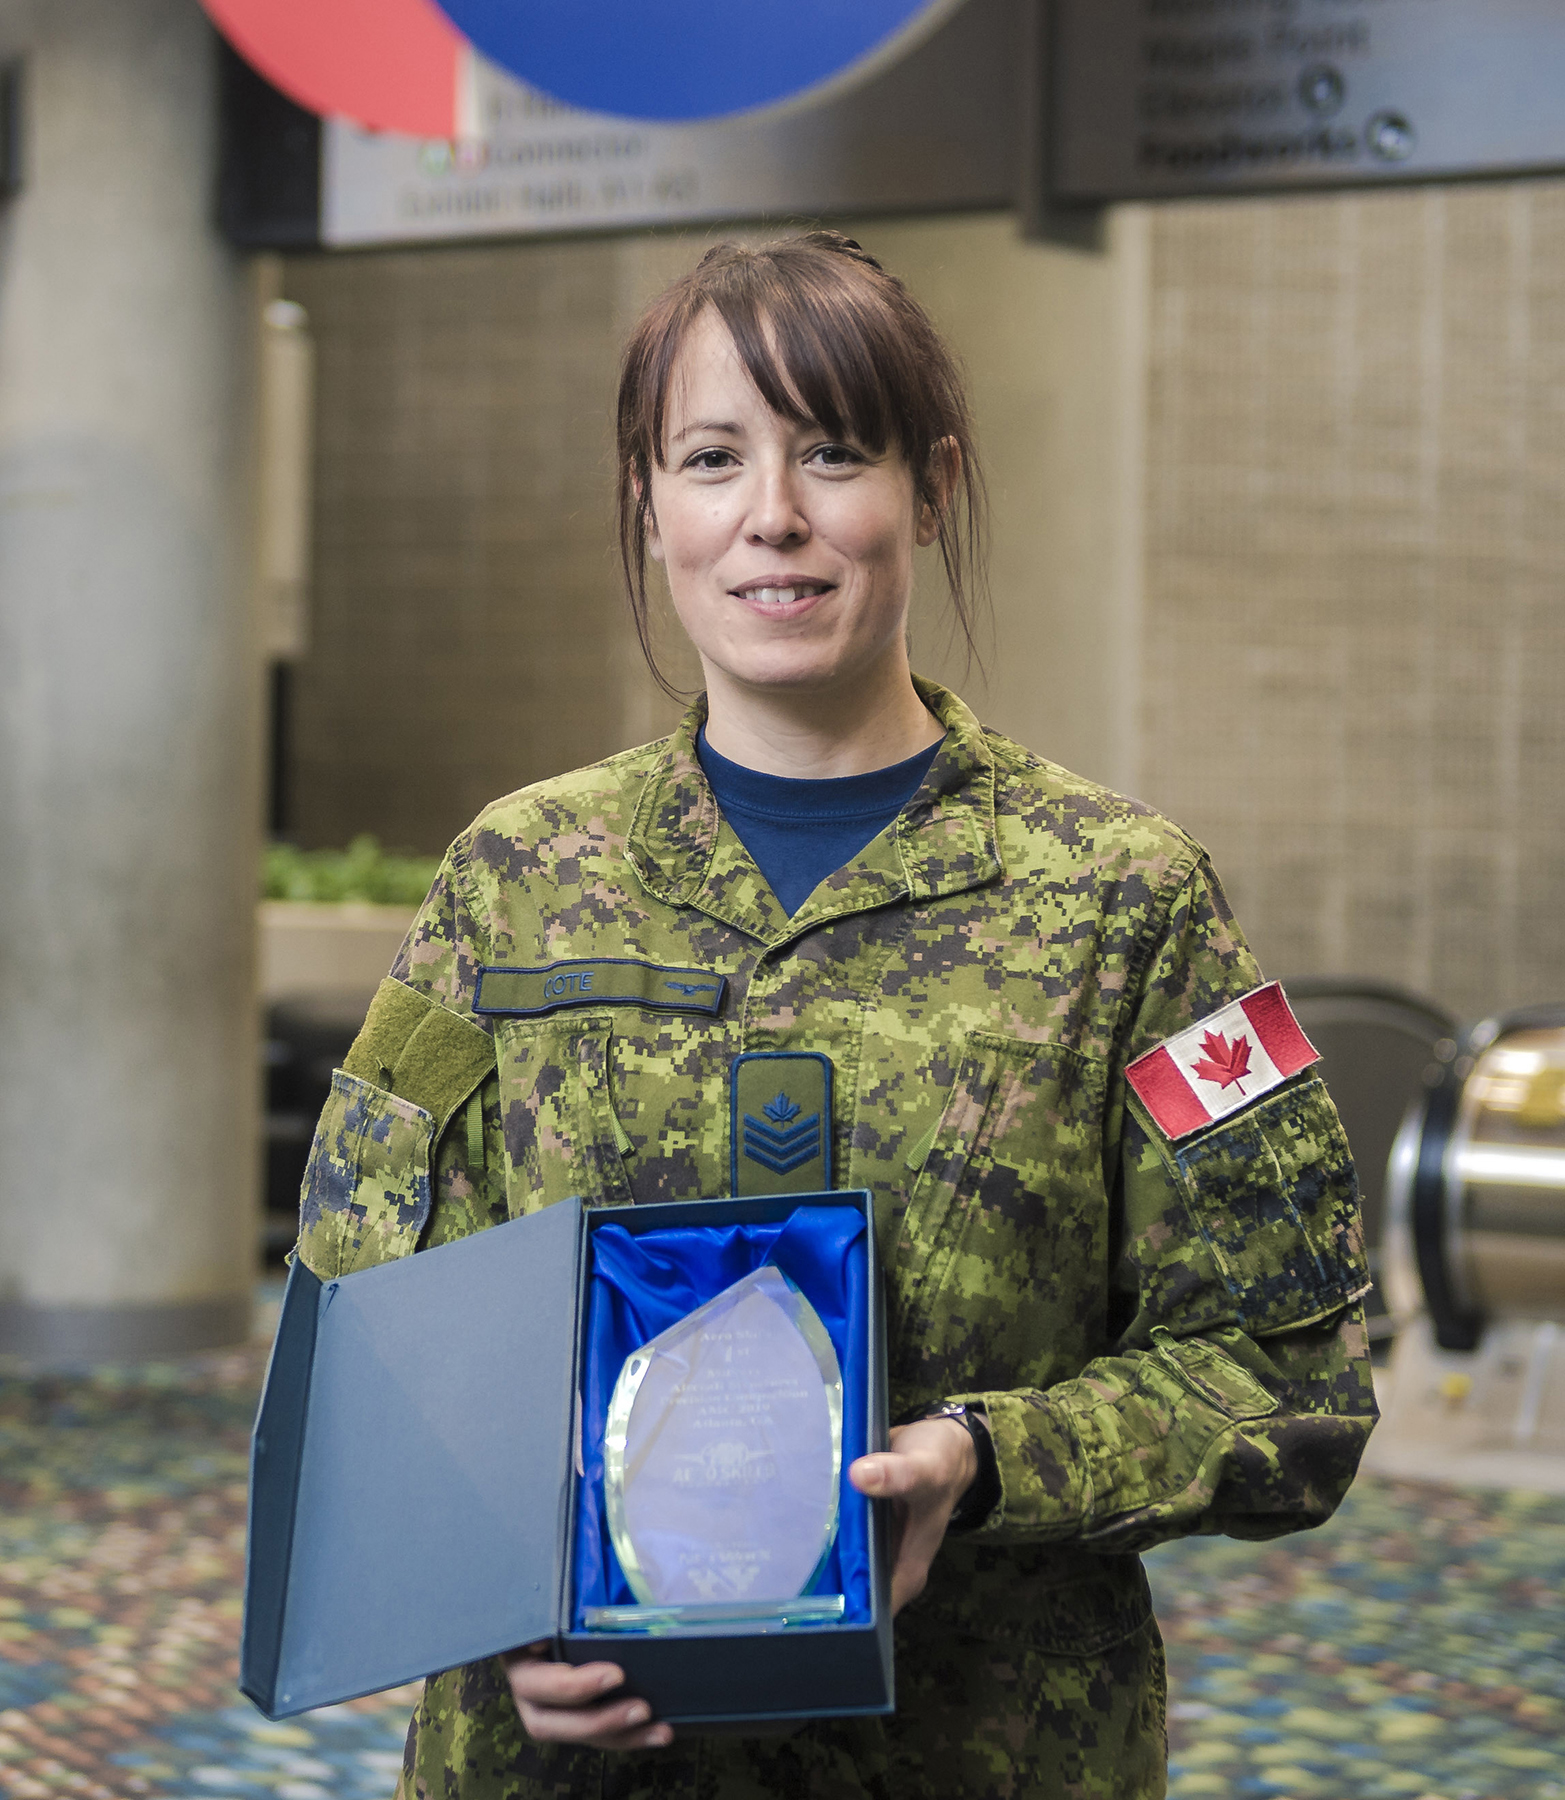 "Sergeant Amélie Côté, from 10 Field Technical Training Squadron, and a member of the 4 Wing Team, won the award for best time on task number three: aircraft technologies group sheet metal accuracy. This task required competitors to test their ""sheet metal/structures skill and accuracy for locating a part, laying out/marking holes and shims, drilling and dragging holes, as required, in aluminum parts"".  PHOTO: RCAF"